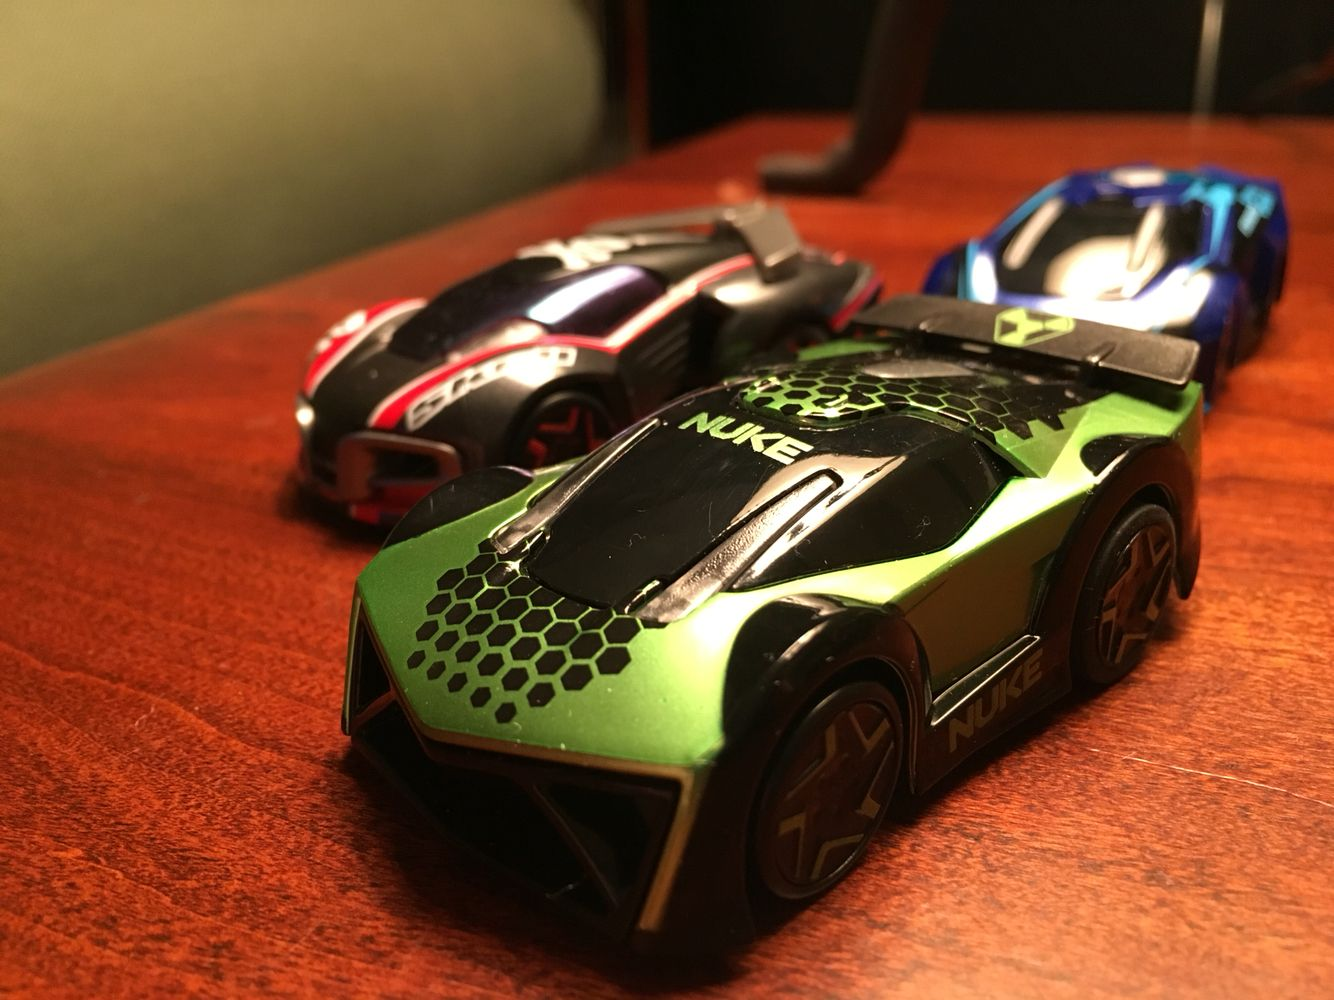 Anki Overdrive Cars Skull Nuke Groundshock Toy Car Gaming Mouse My Photos